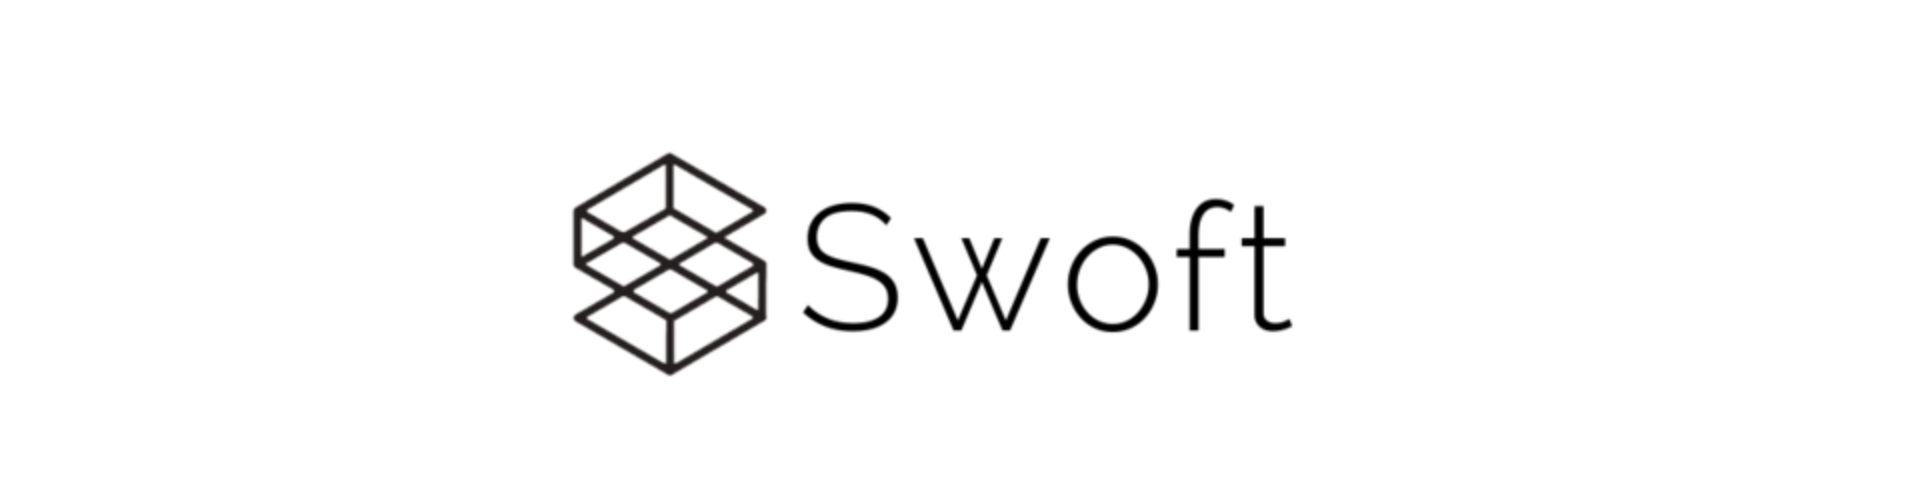 swoft-logo